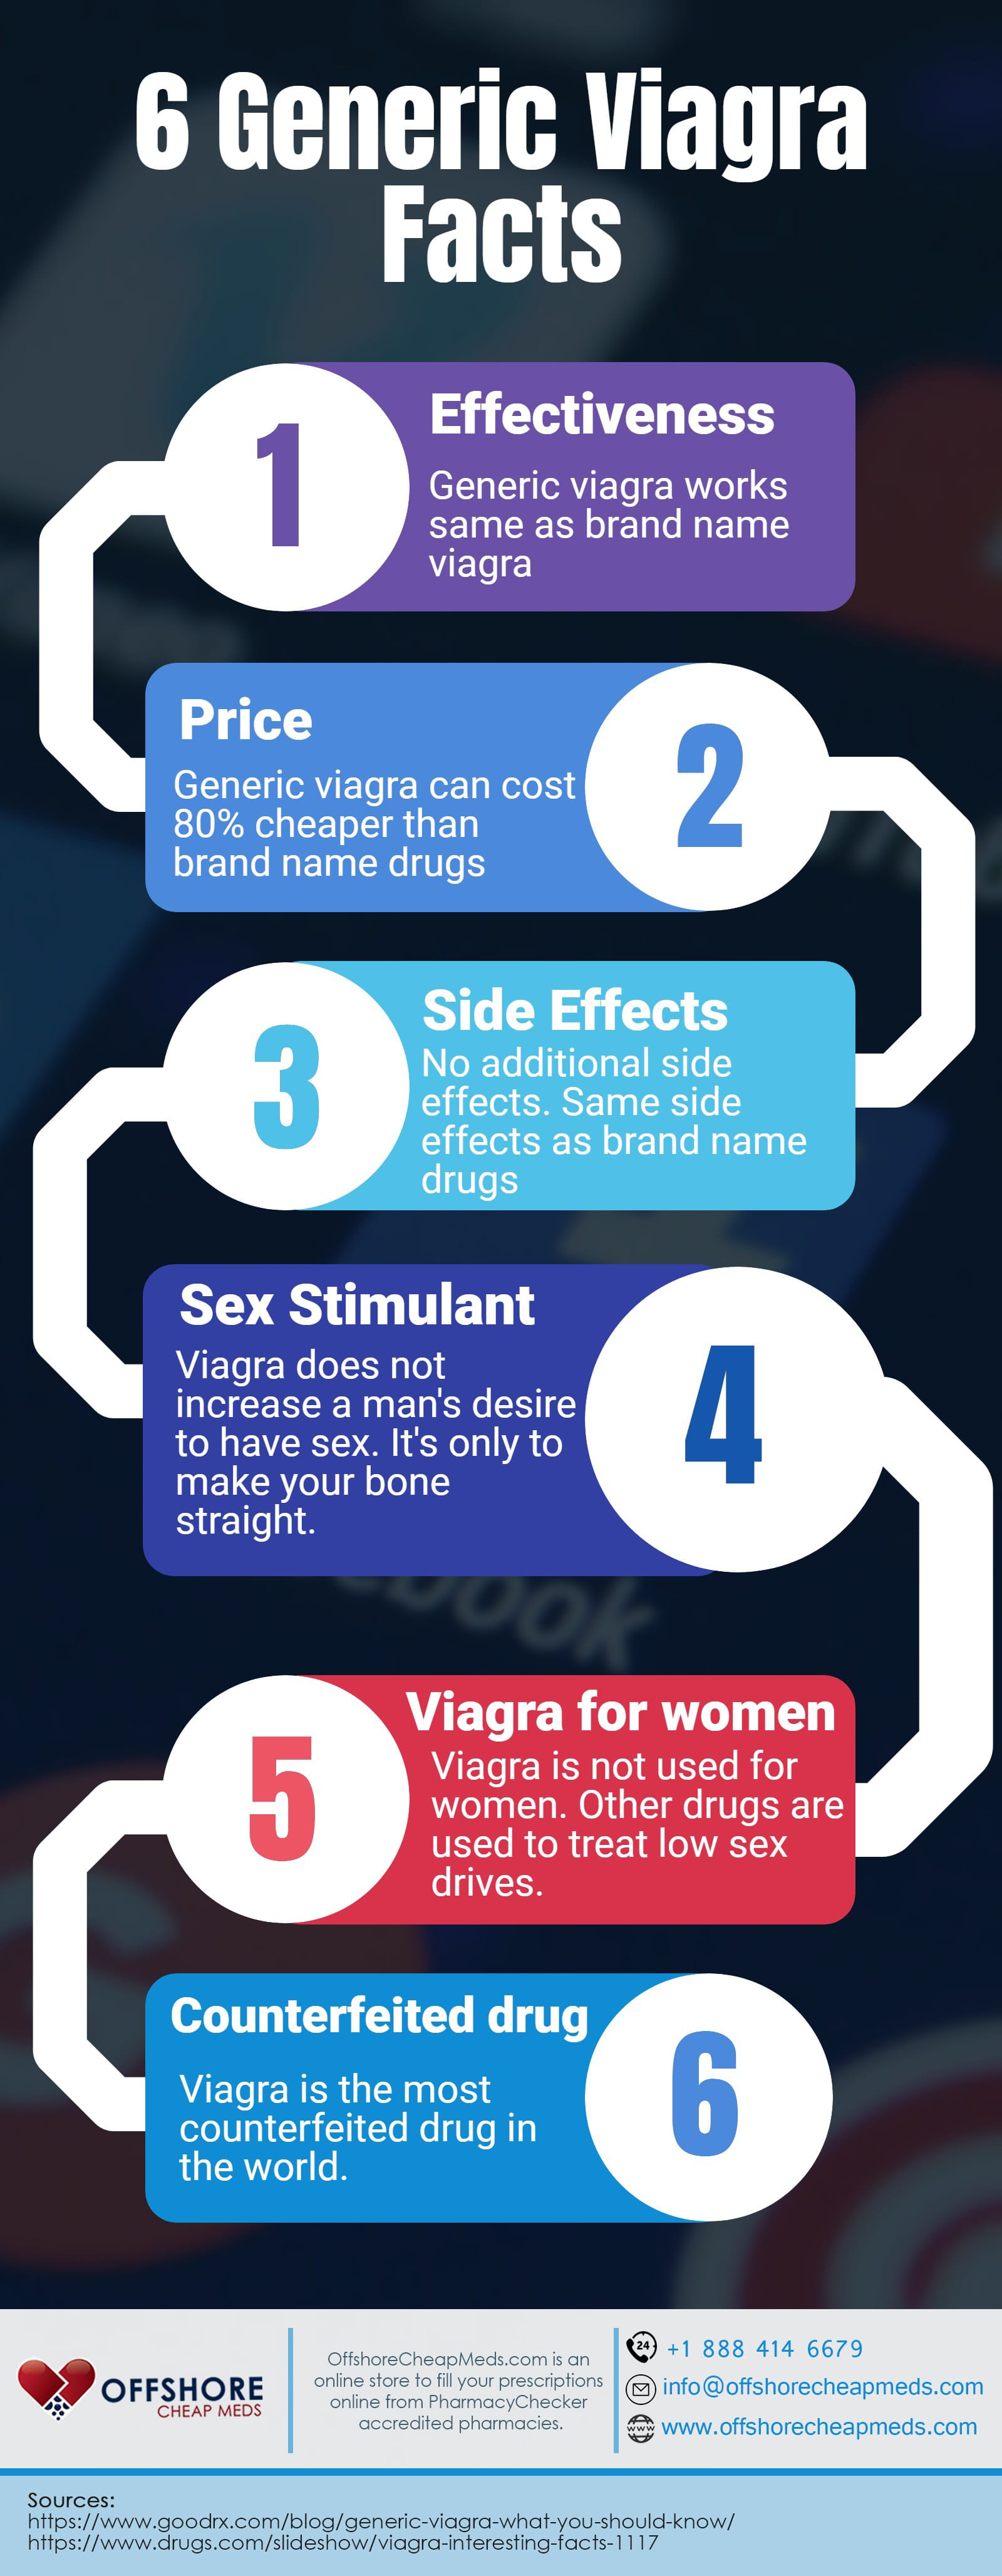 Generic viagra facts, you should know